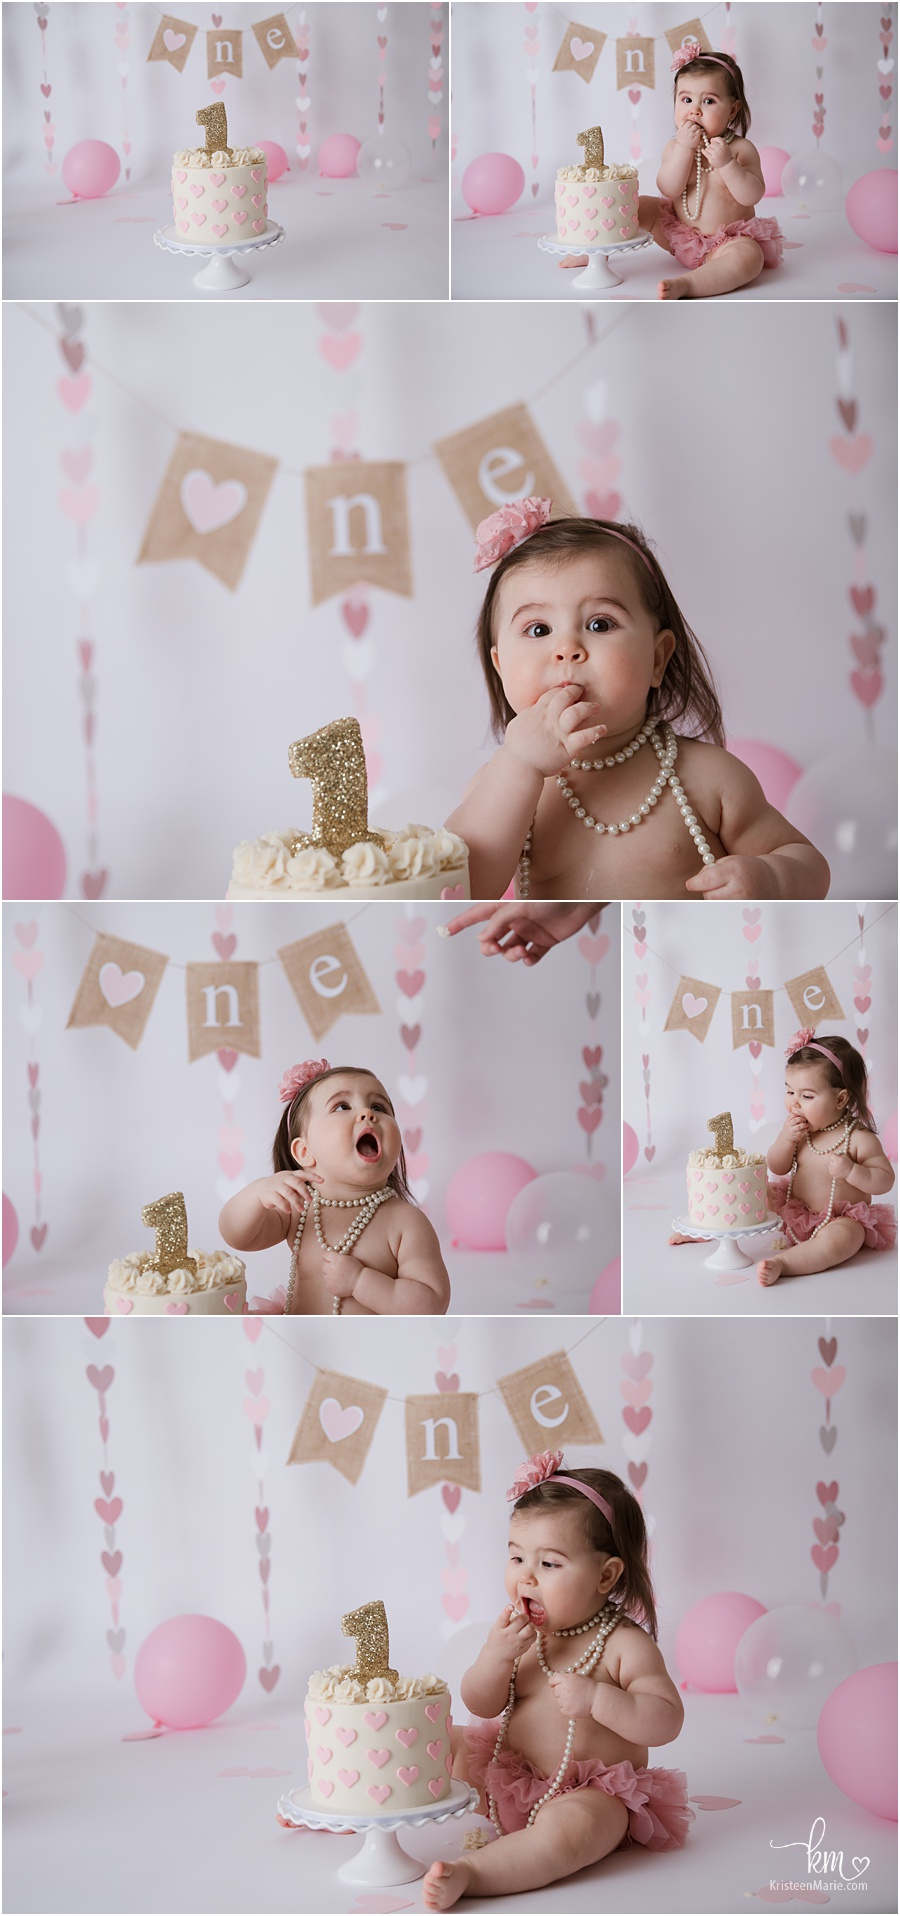 pink and gold with burlap heart 1st birthday cake smash - balloons and party